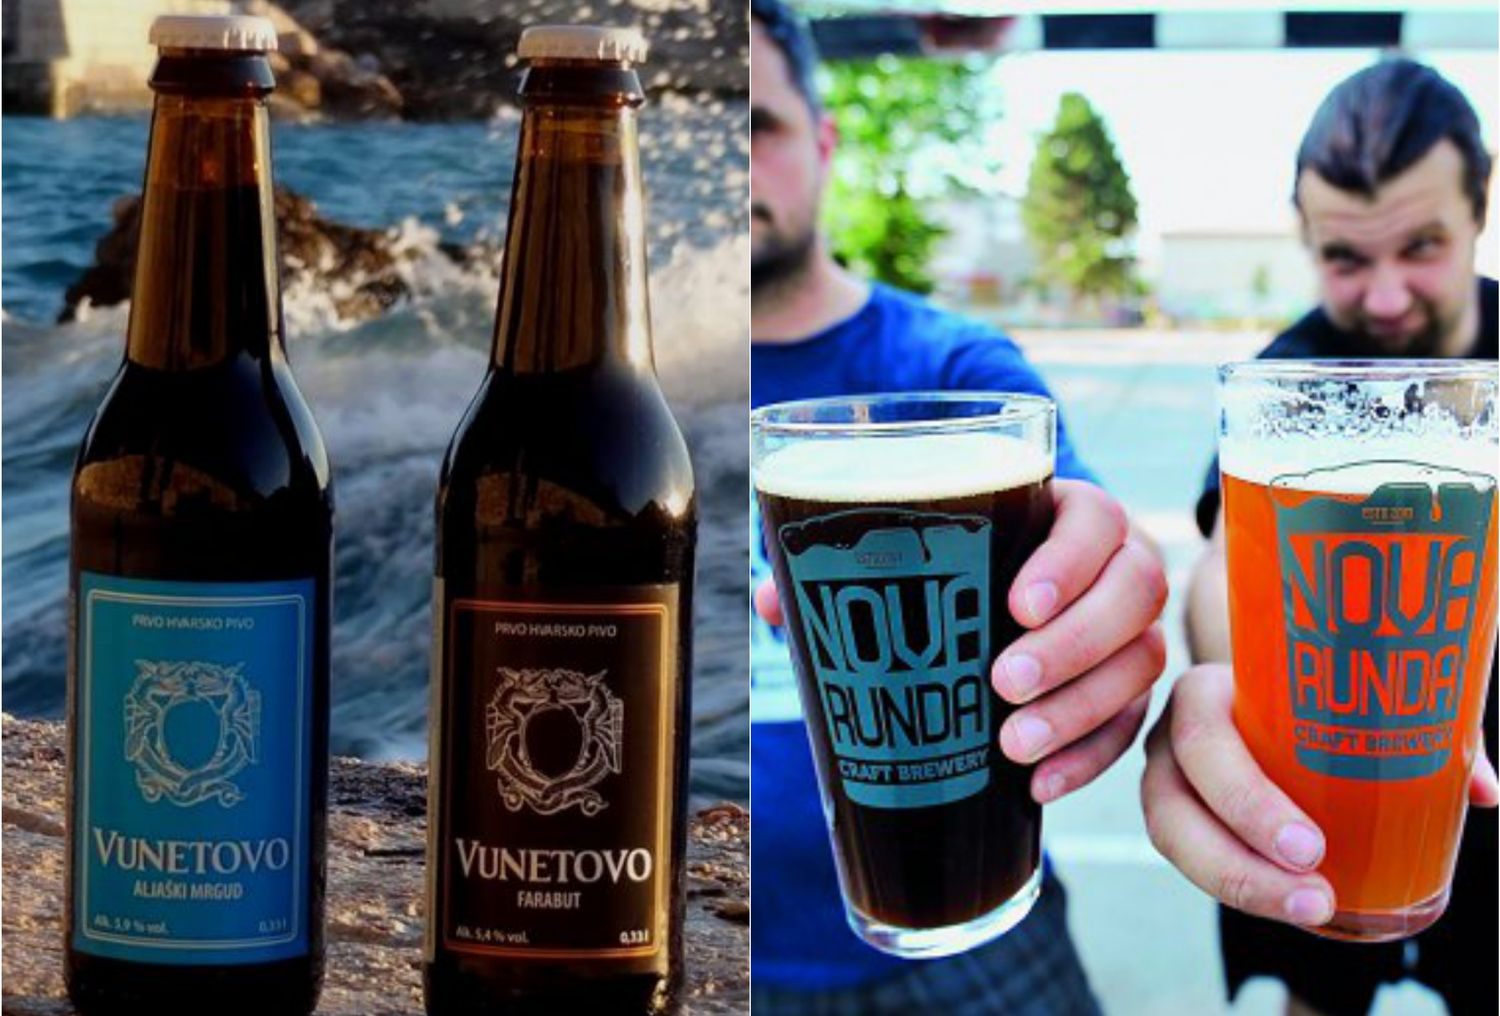 Croatia's Best Beer, Brewer & New Brewer Named